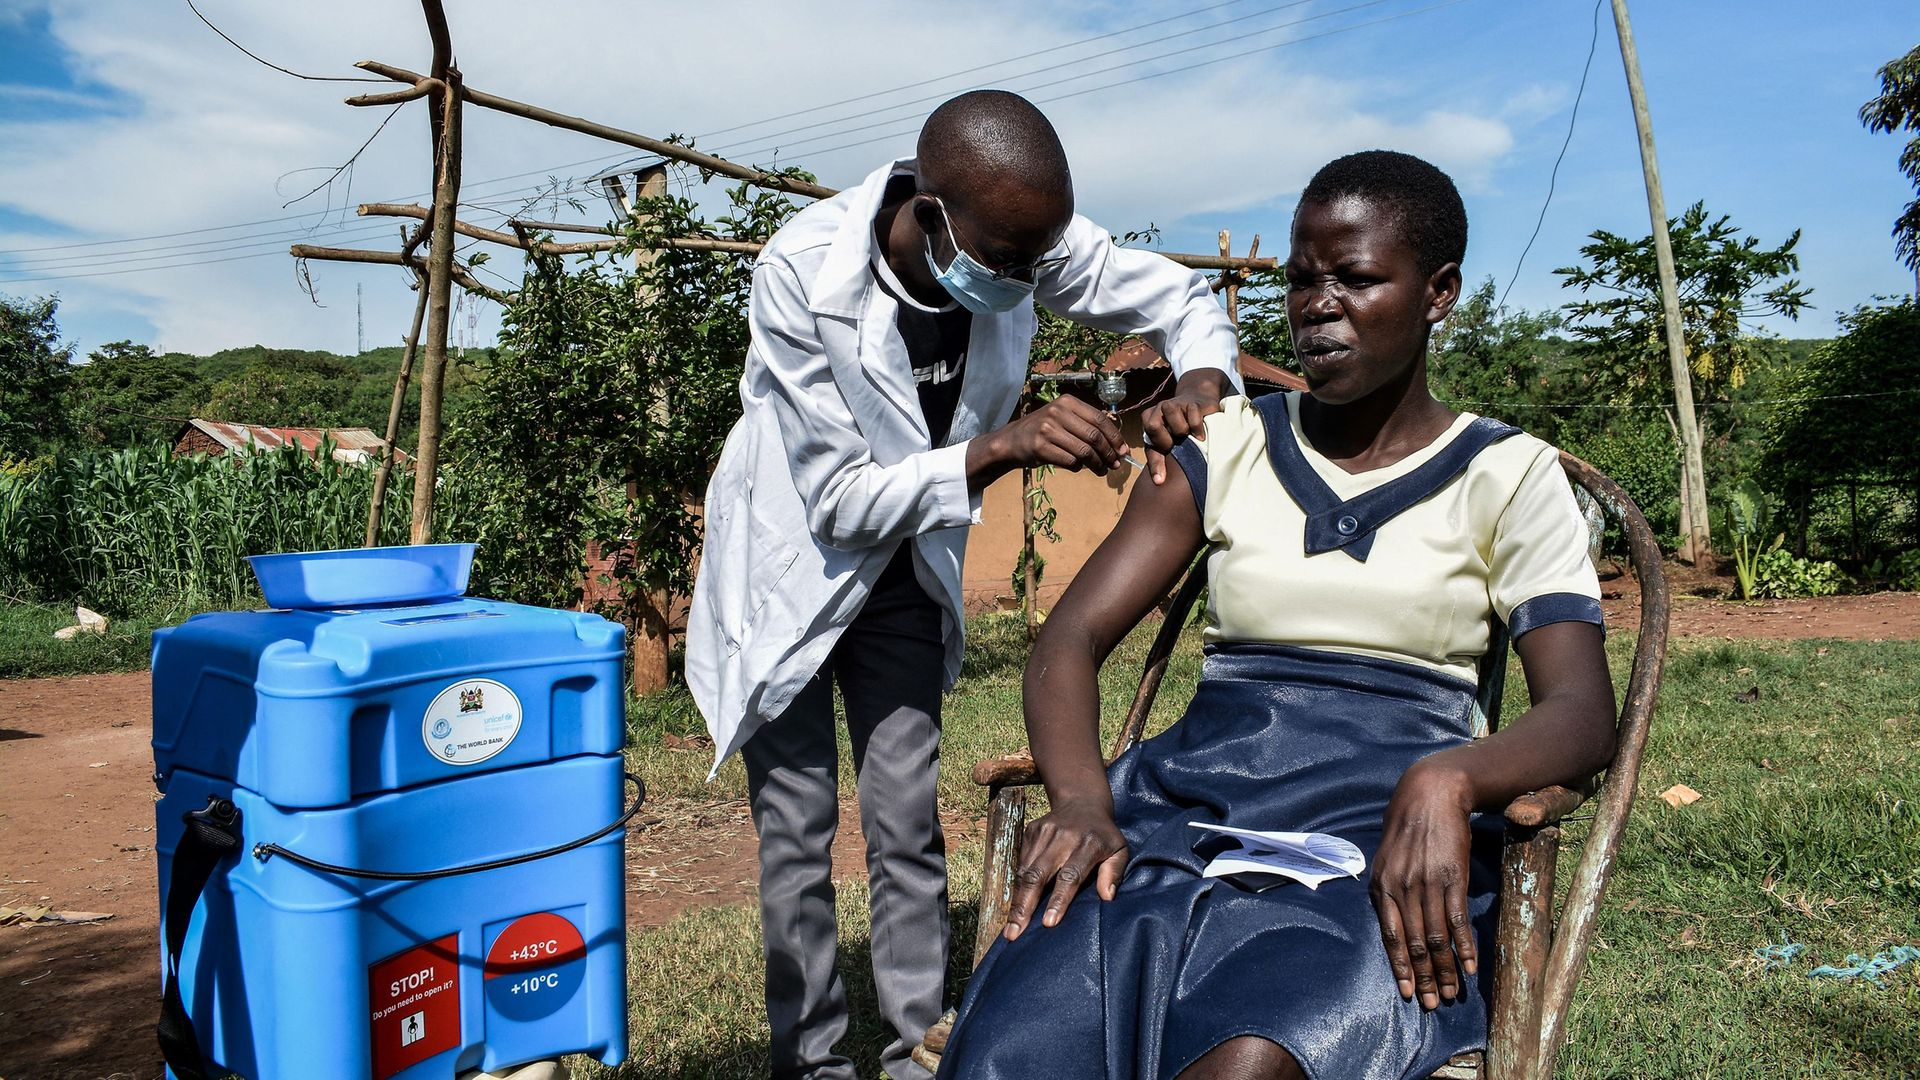 A health worker injects a woman with the Oxford/AstraZeneca Covid-19 vaccine during door-to-door visits in Siaya, Kenya - Credit: AFP via Getty Images